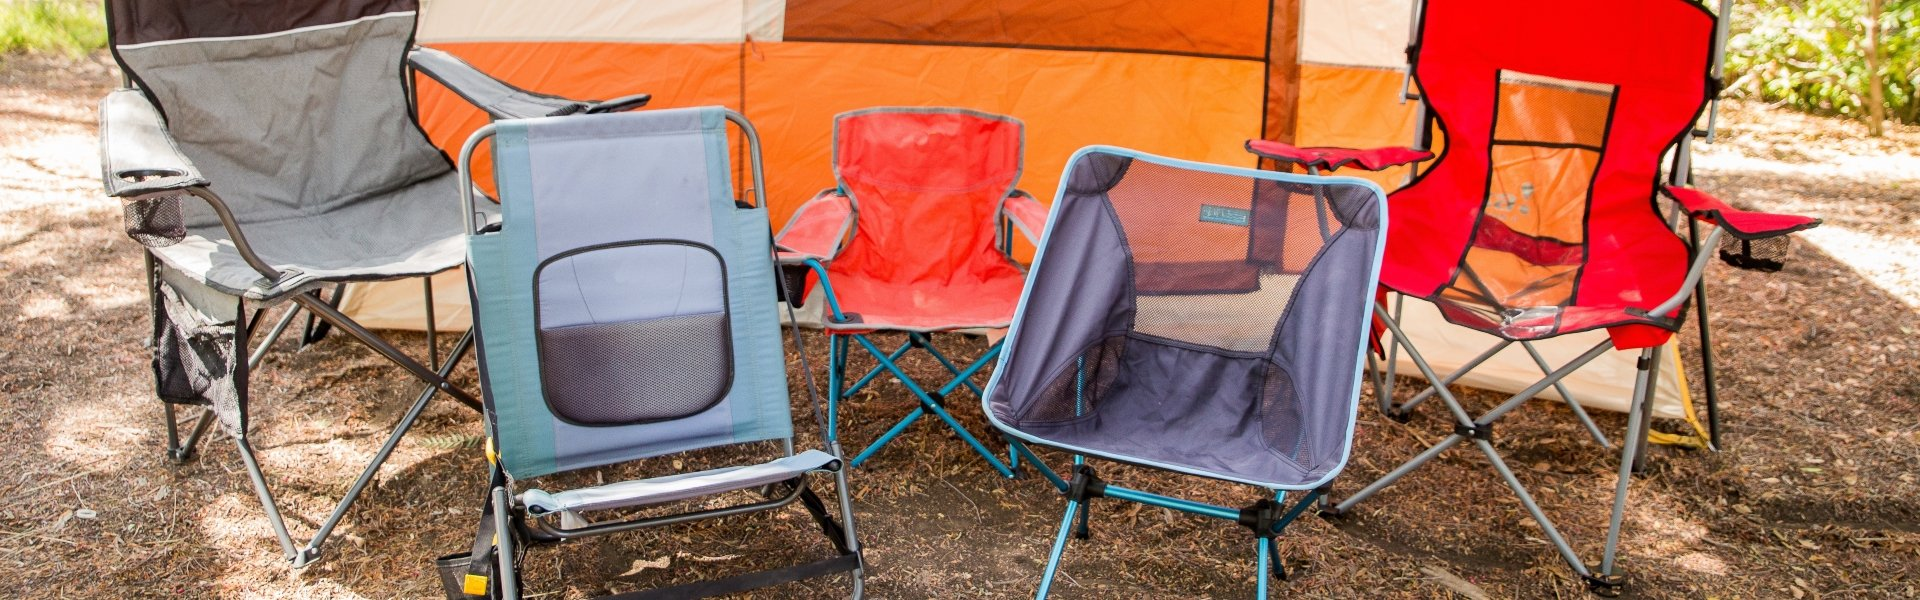 8 Best Heavy Duty Camping Chairs Reviewed In Detail Dec 2019